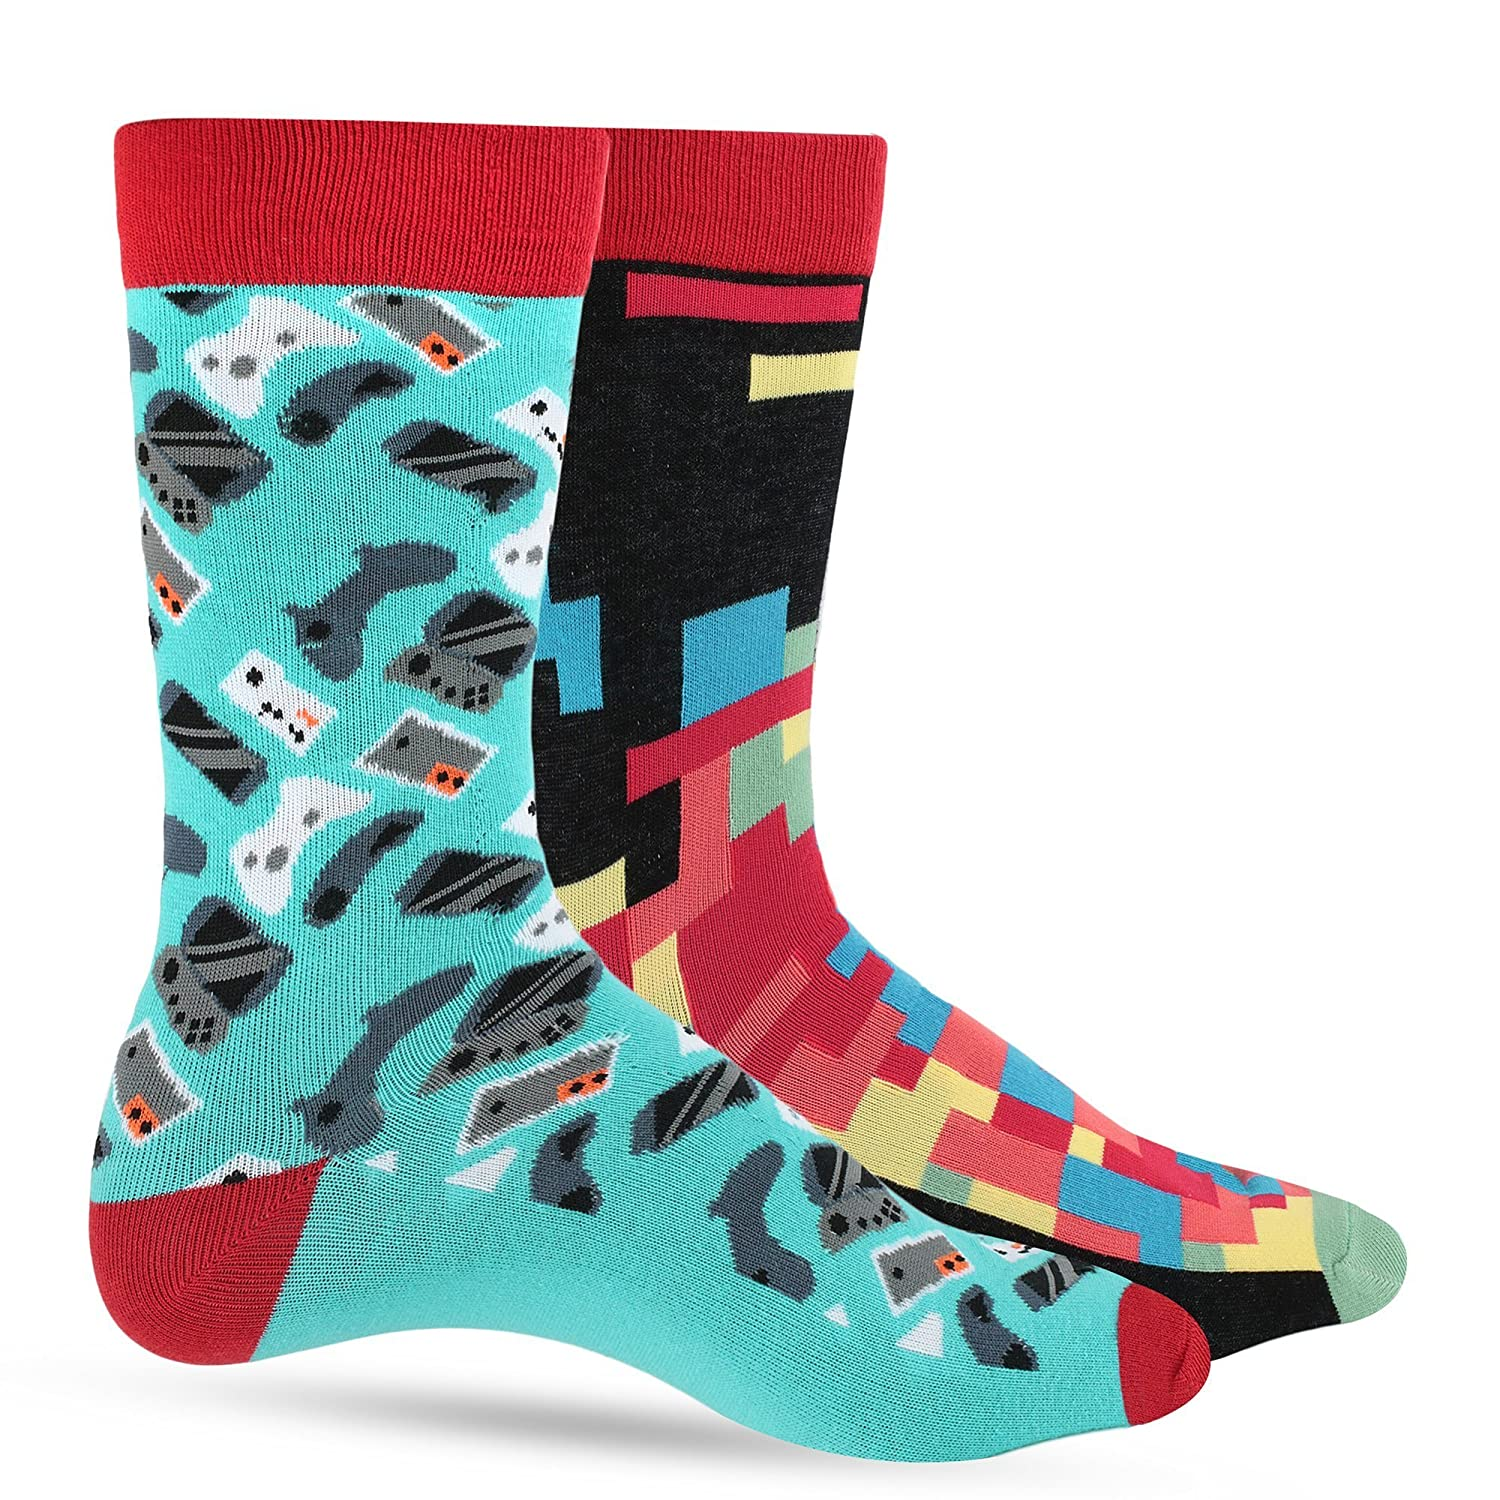 Crazy Socks For Men: Mens Funny Dress Socks: Novelty Crazy Cool & Funky Colorful Sock: Geek & Science